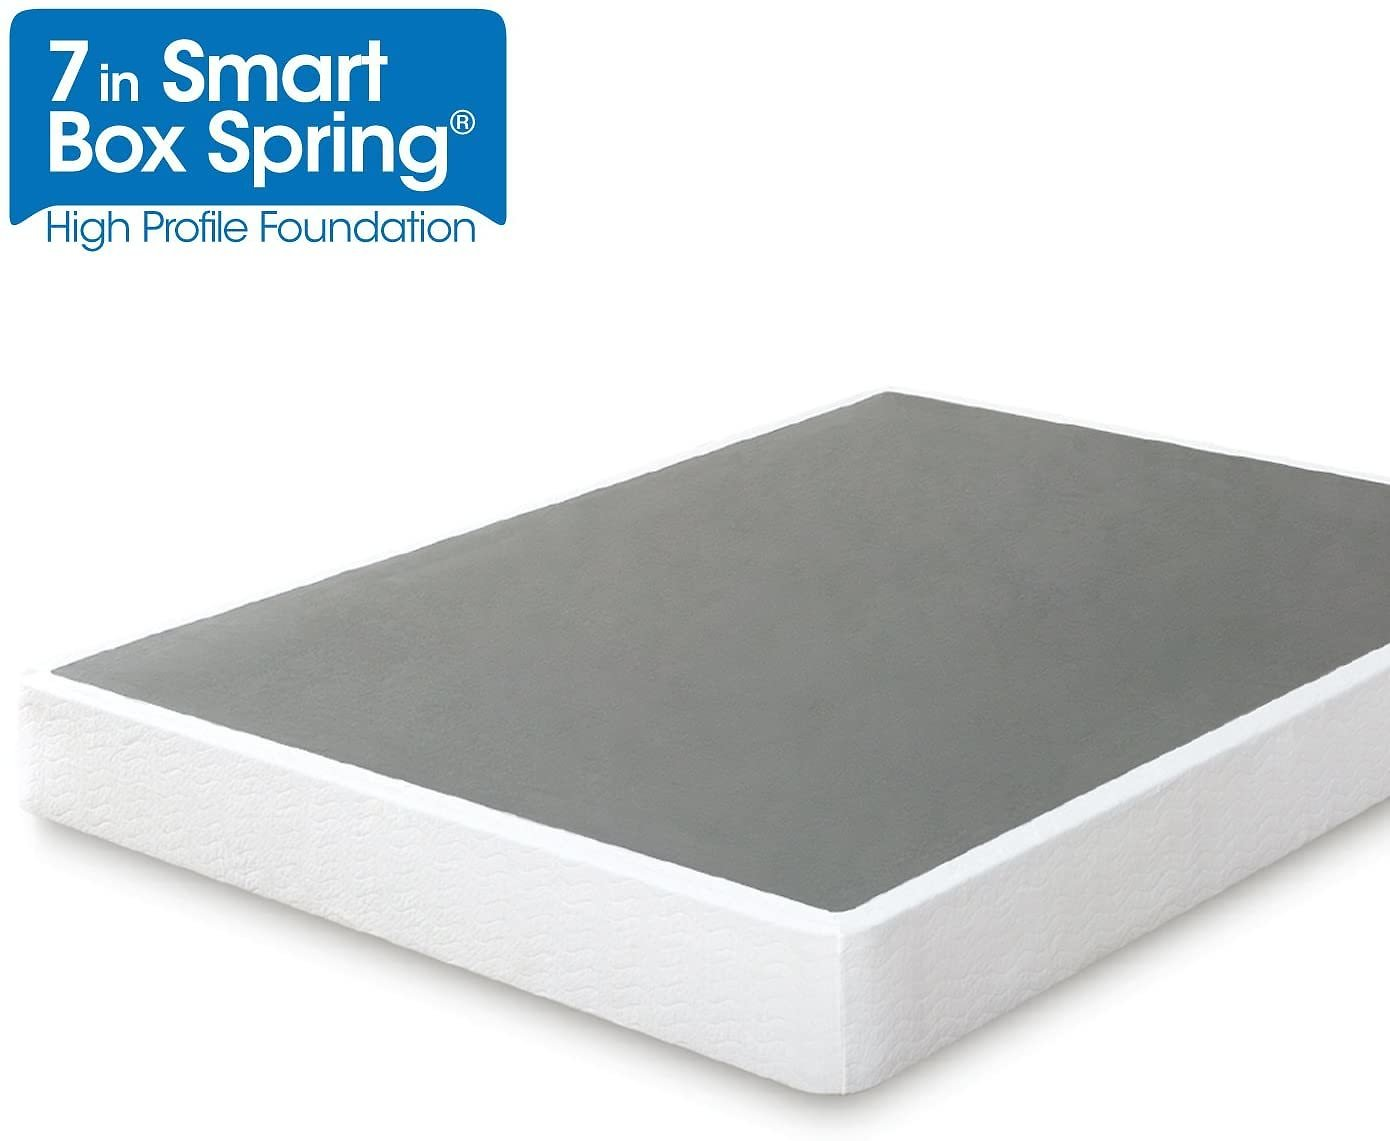 Zinus Armita 7 Inch Smart Box Spring / Mattress Foundation / Built-to-Last Metal Structure / Easy Assembly, Queen